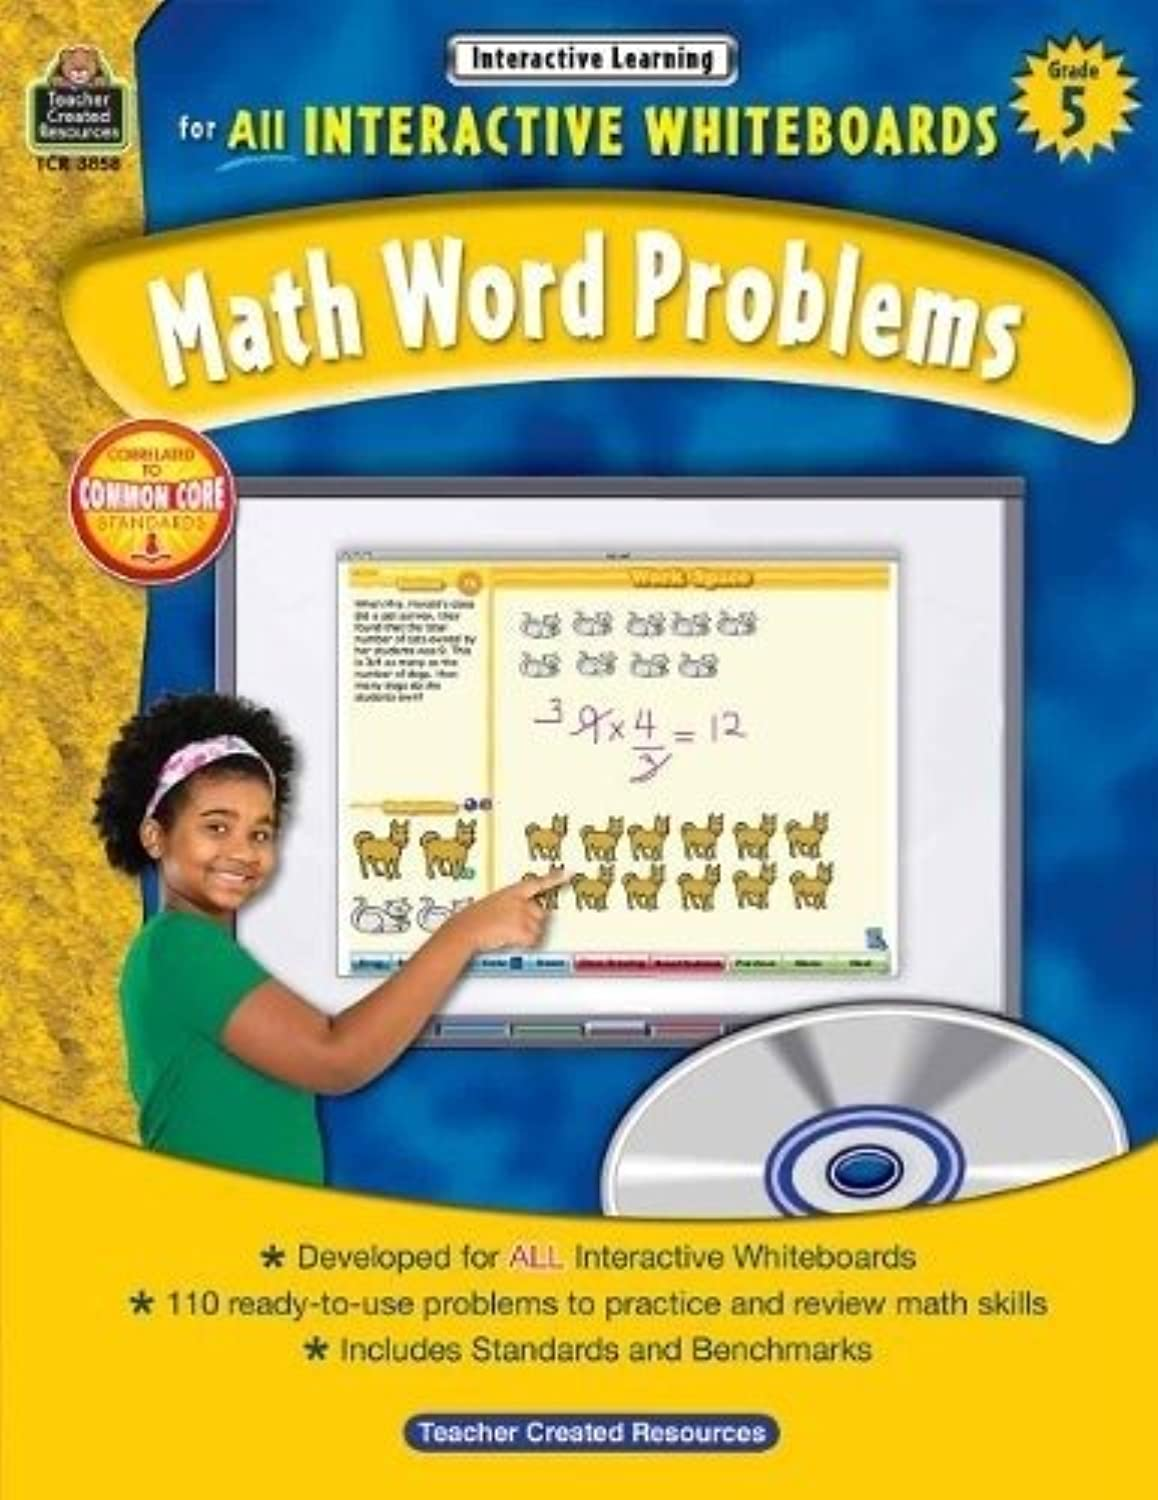 Teacher Created Resources TCR3858 Interactive Learning Gr 5 Math Word Problems